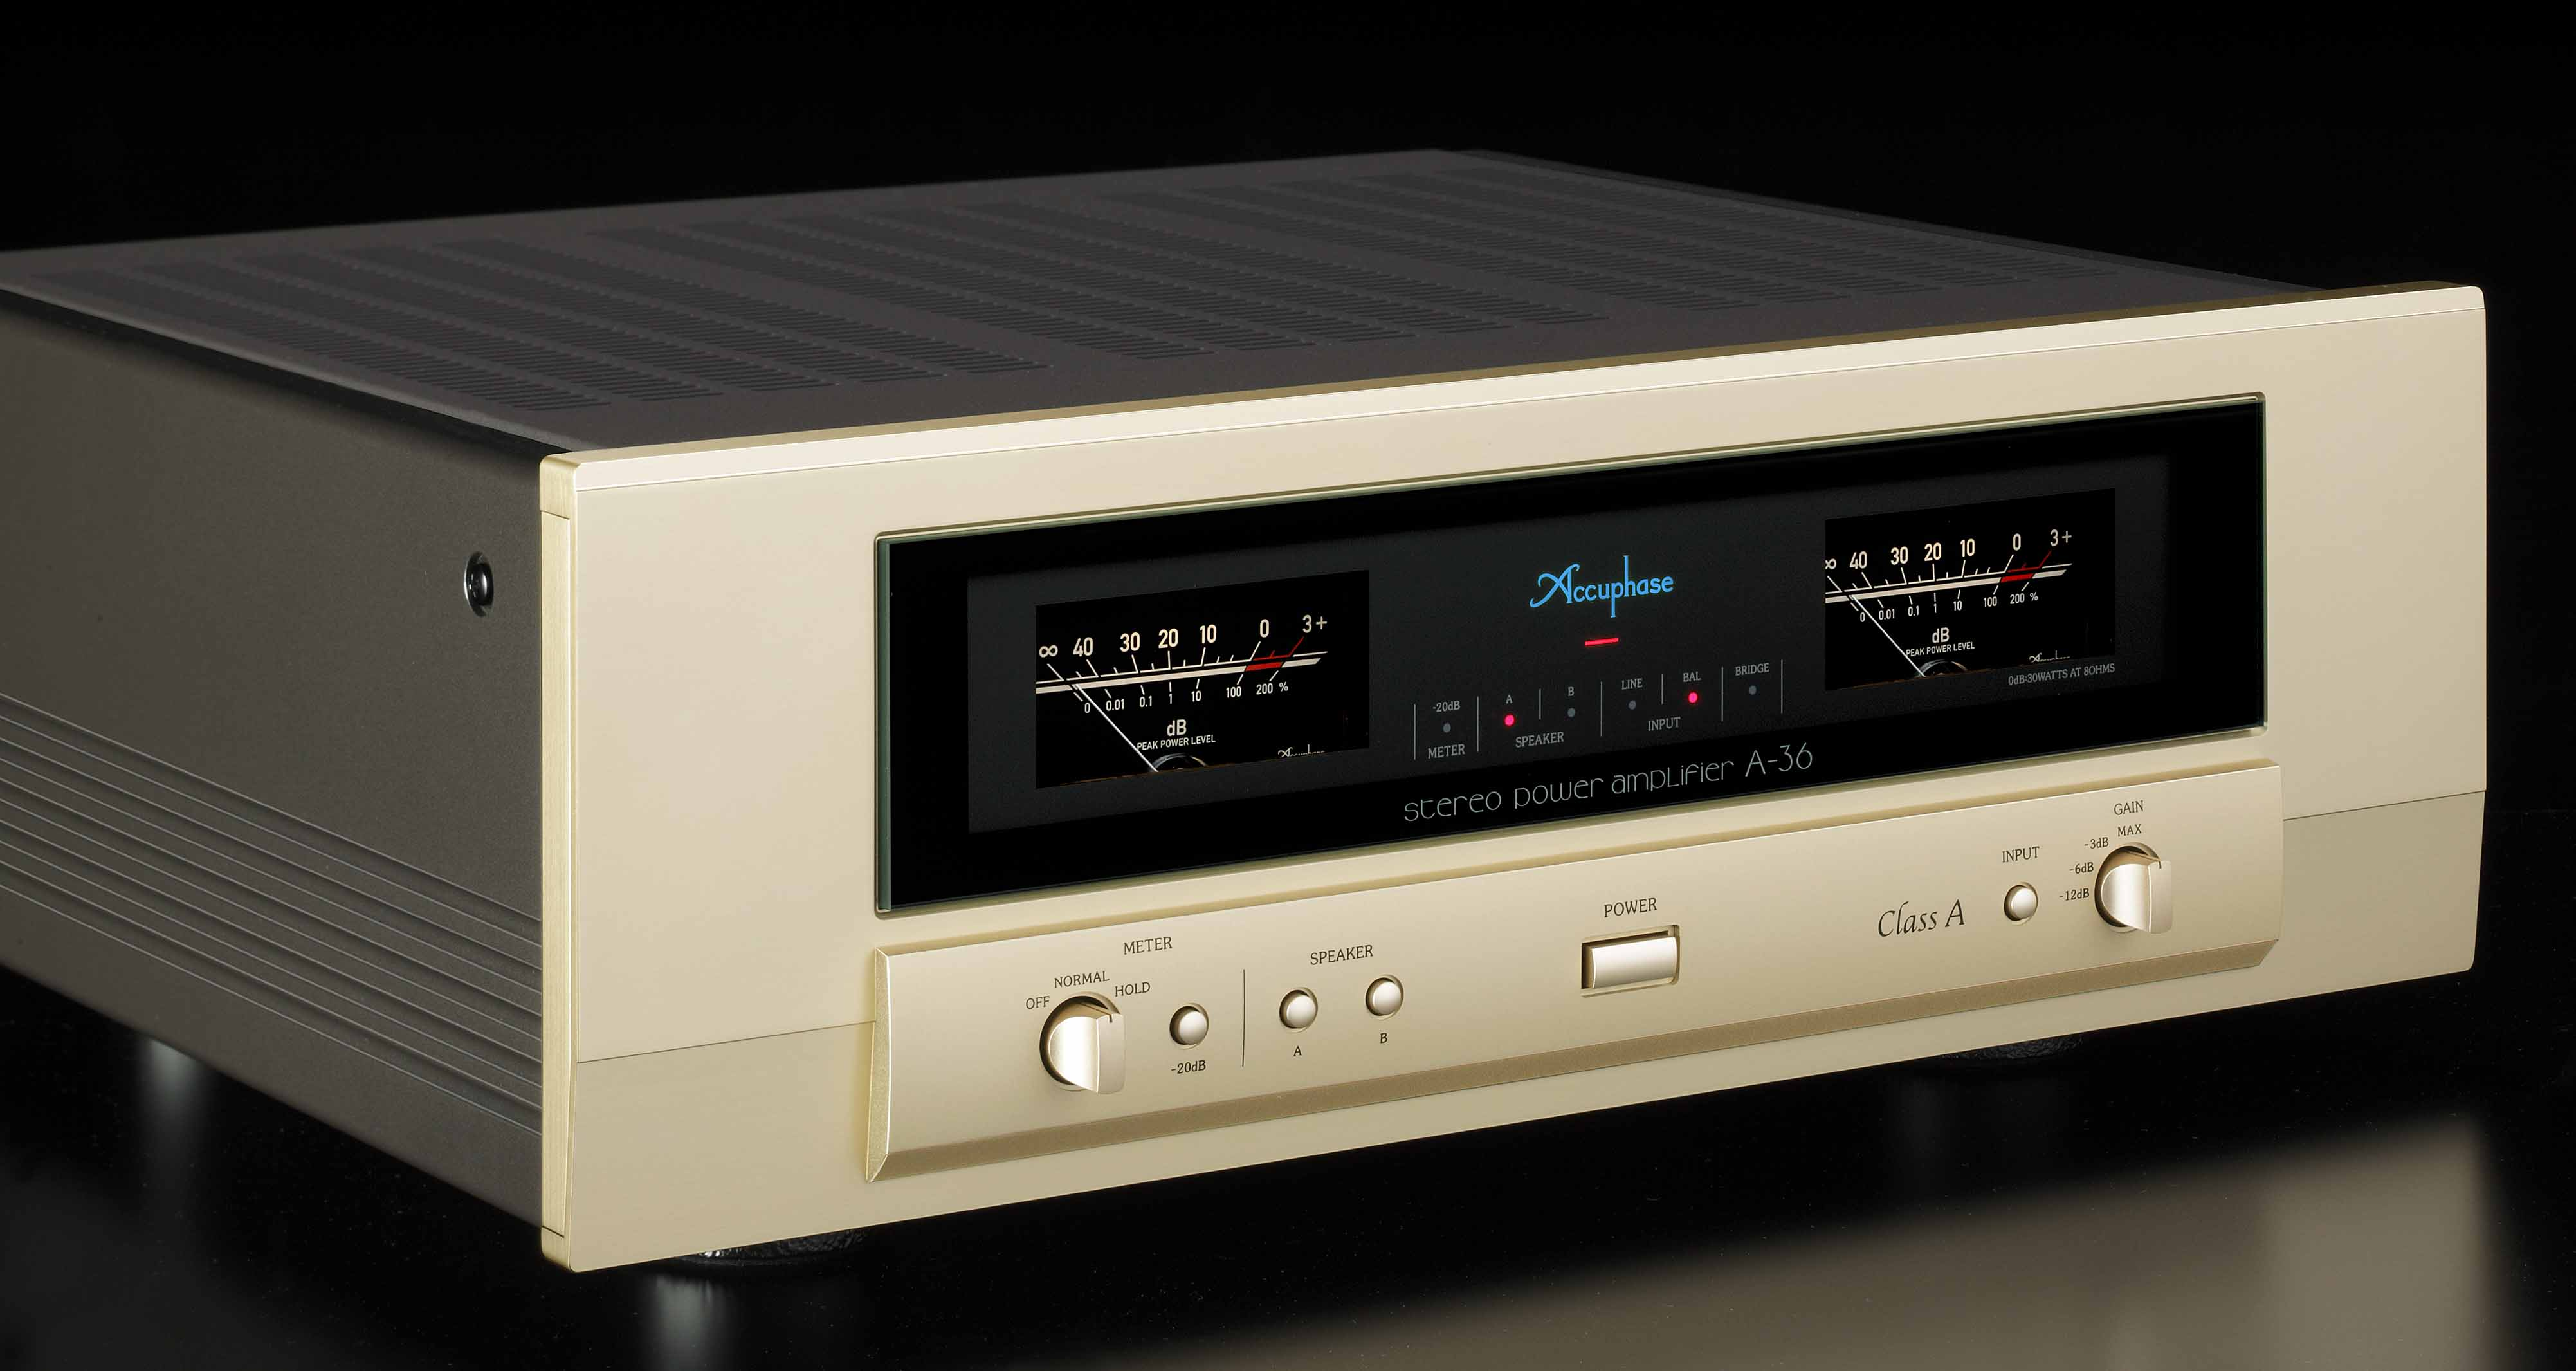 class a stereo power amplifier a 36 accuphase laboratory inc. Black Bedroom Furniture Sets. Home Design Ideas